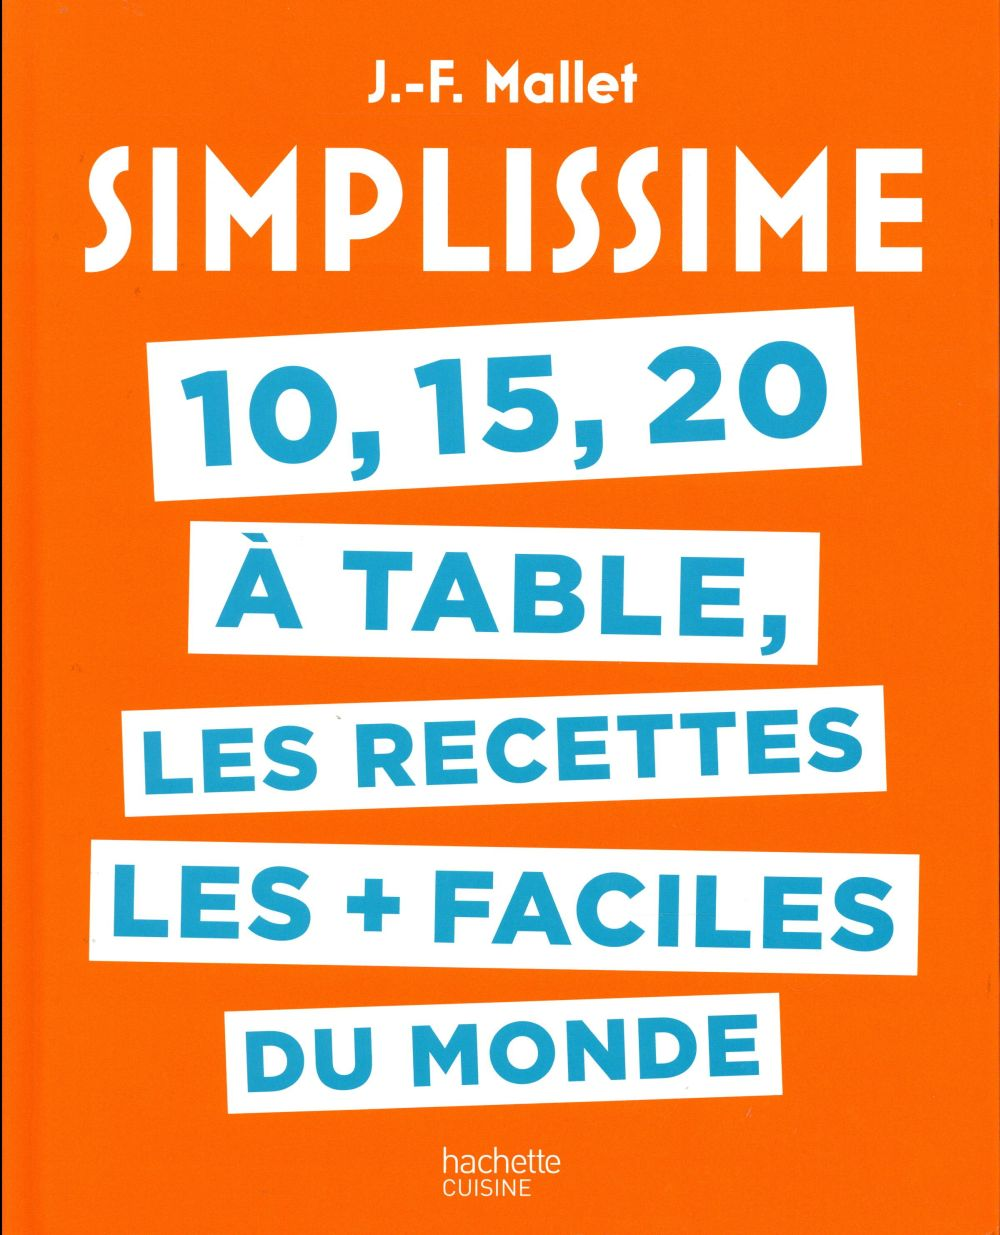 Simplissime ; 10, 15, 20 à table